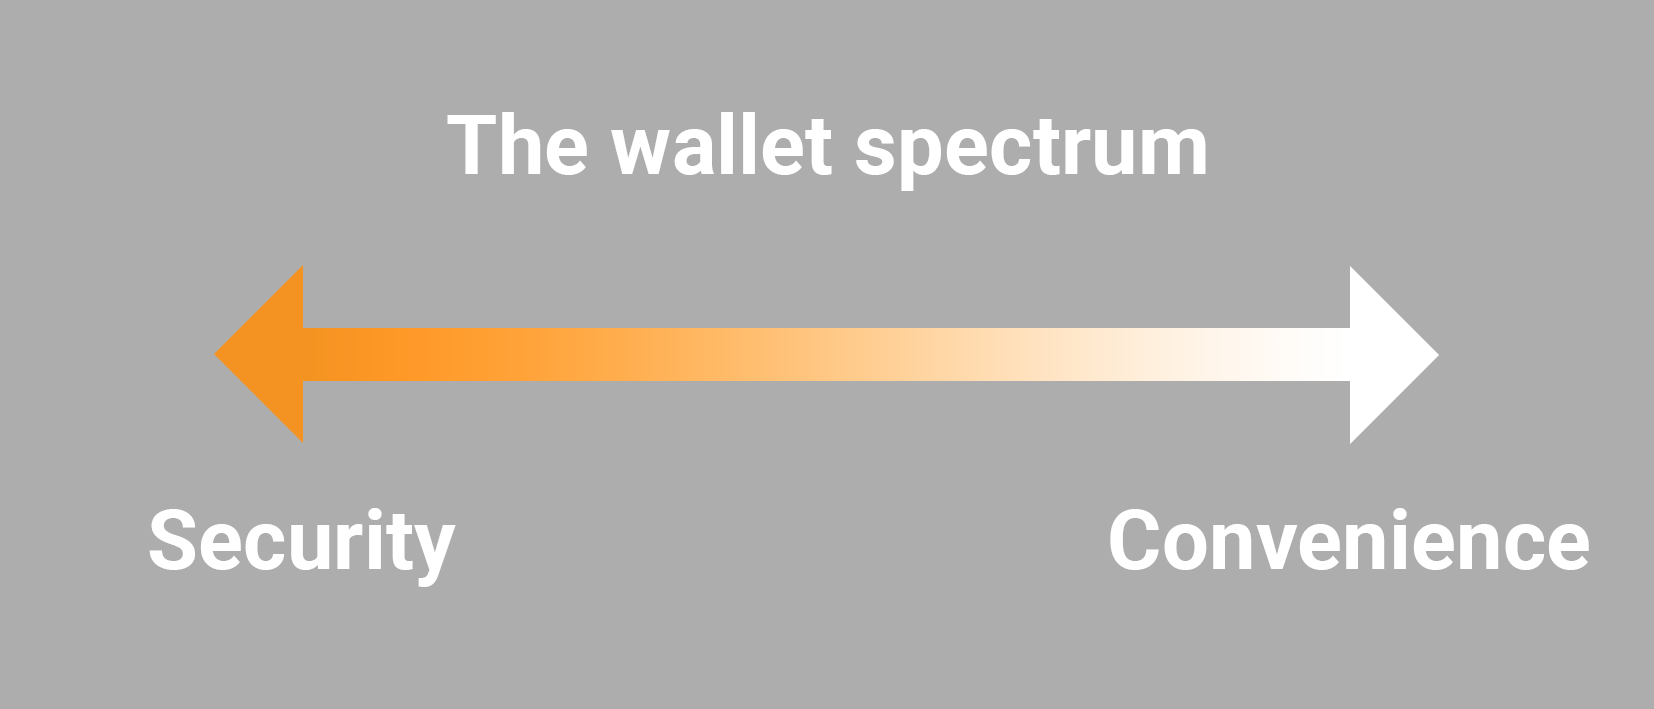 Security vs Convenience: the bitcoin wallet spectrum